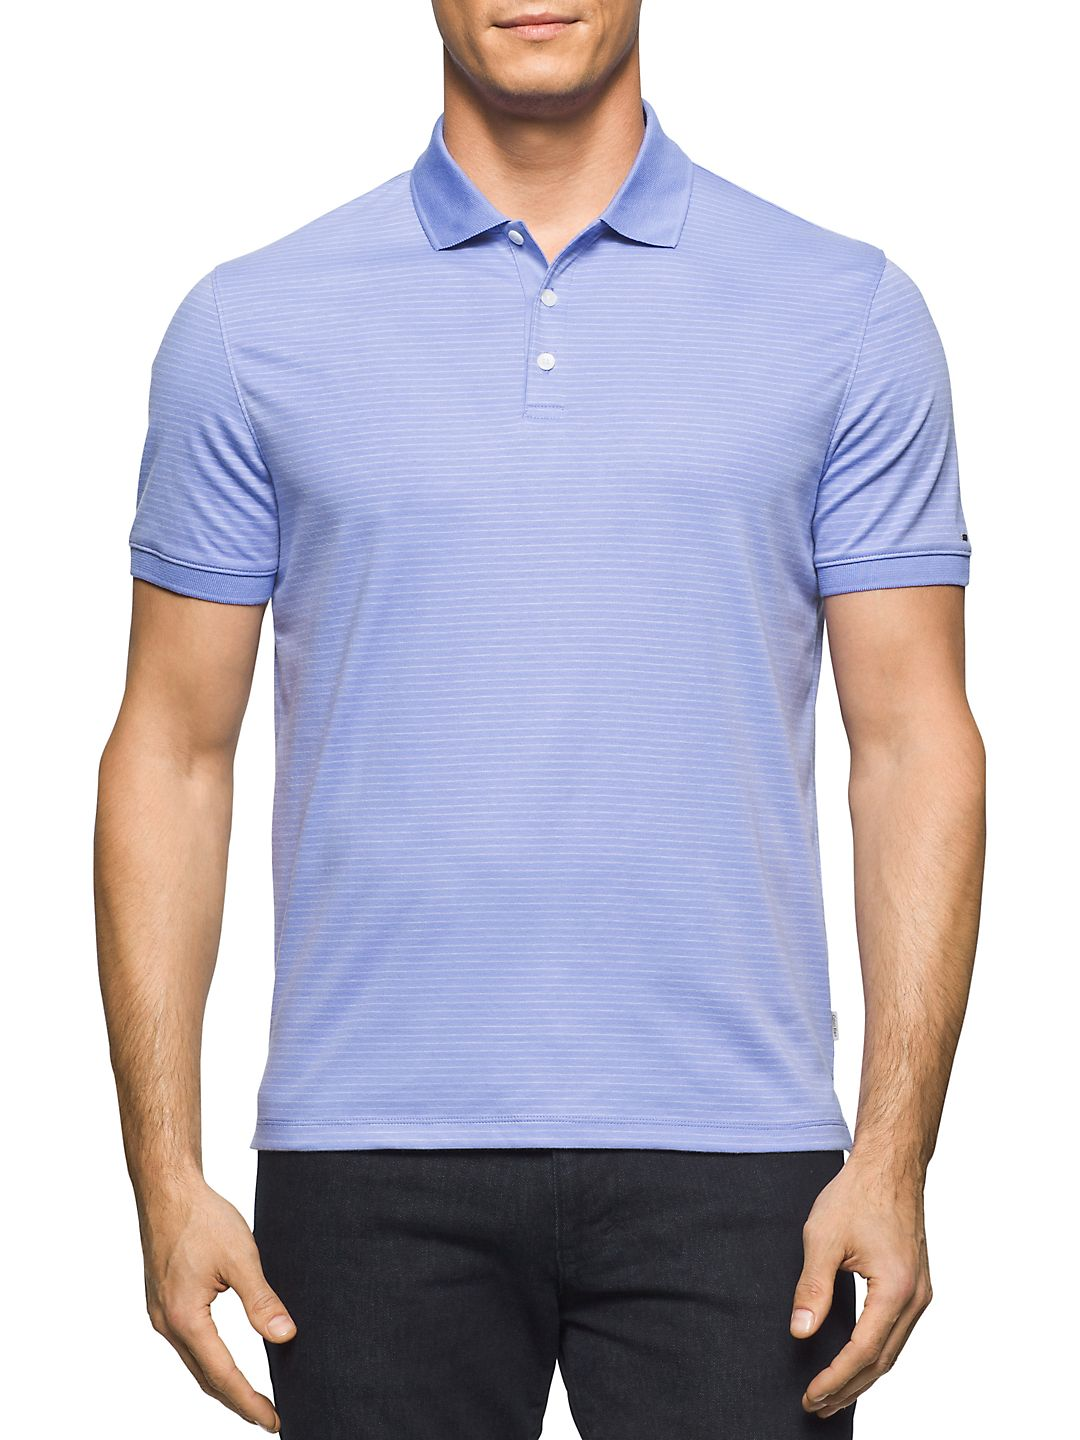 Muted Stripe Cotton Polo